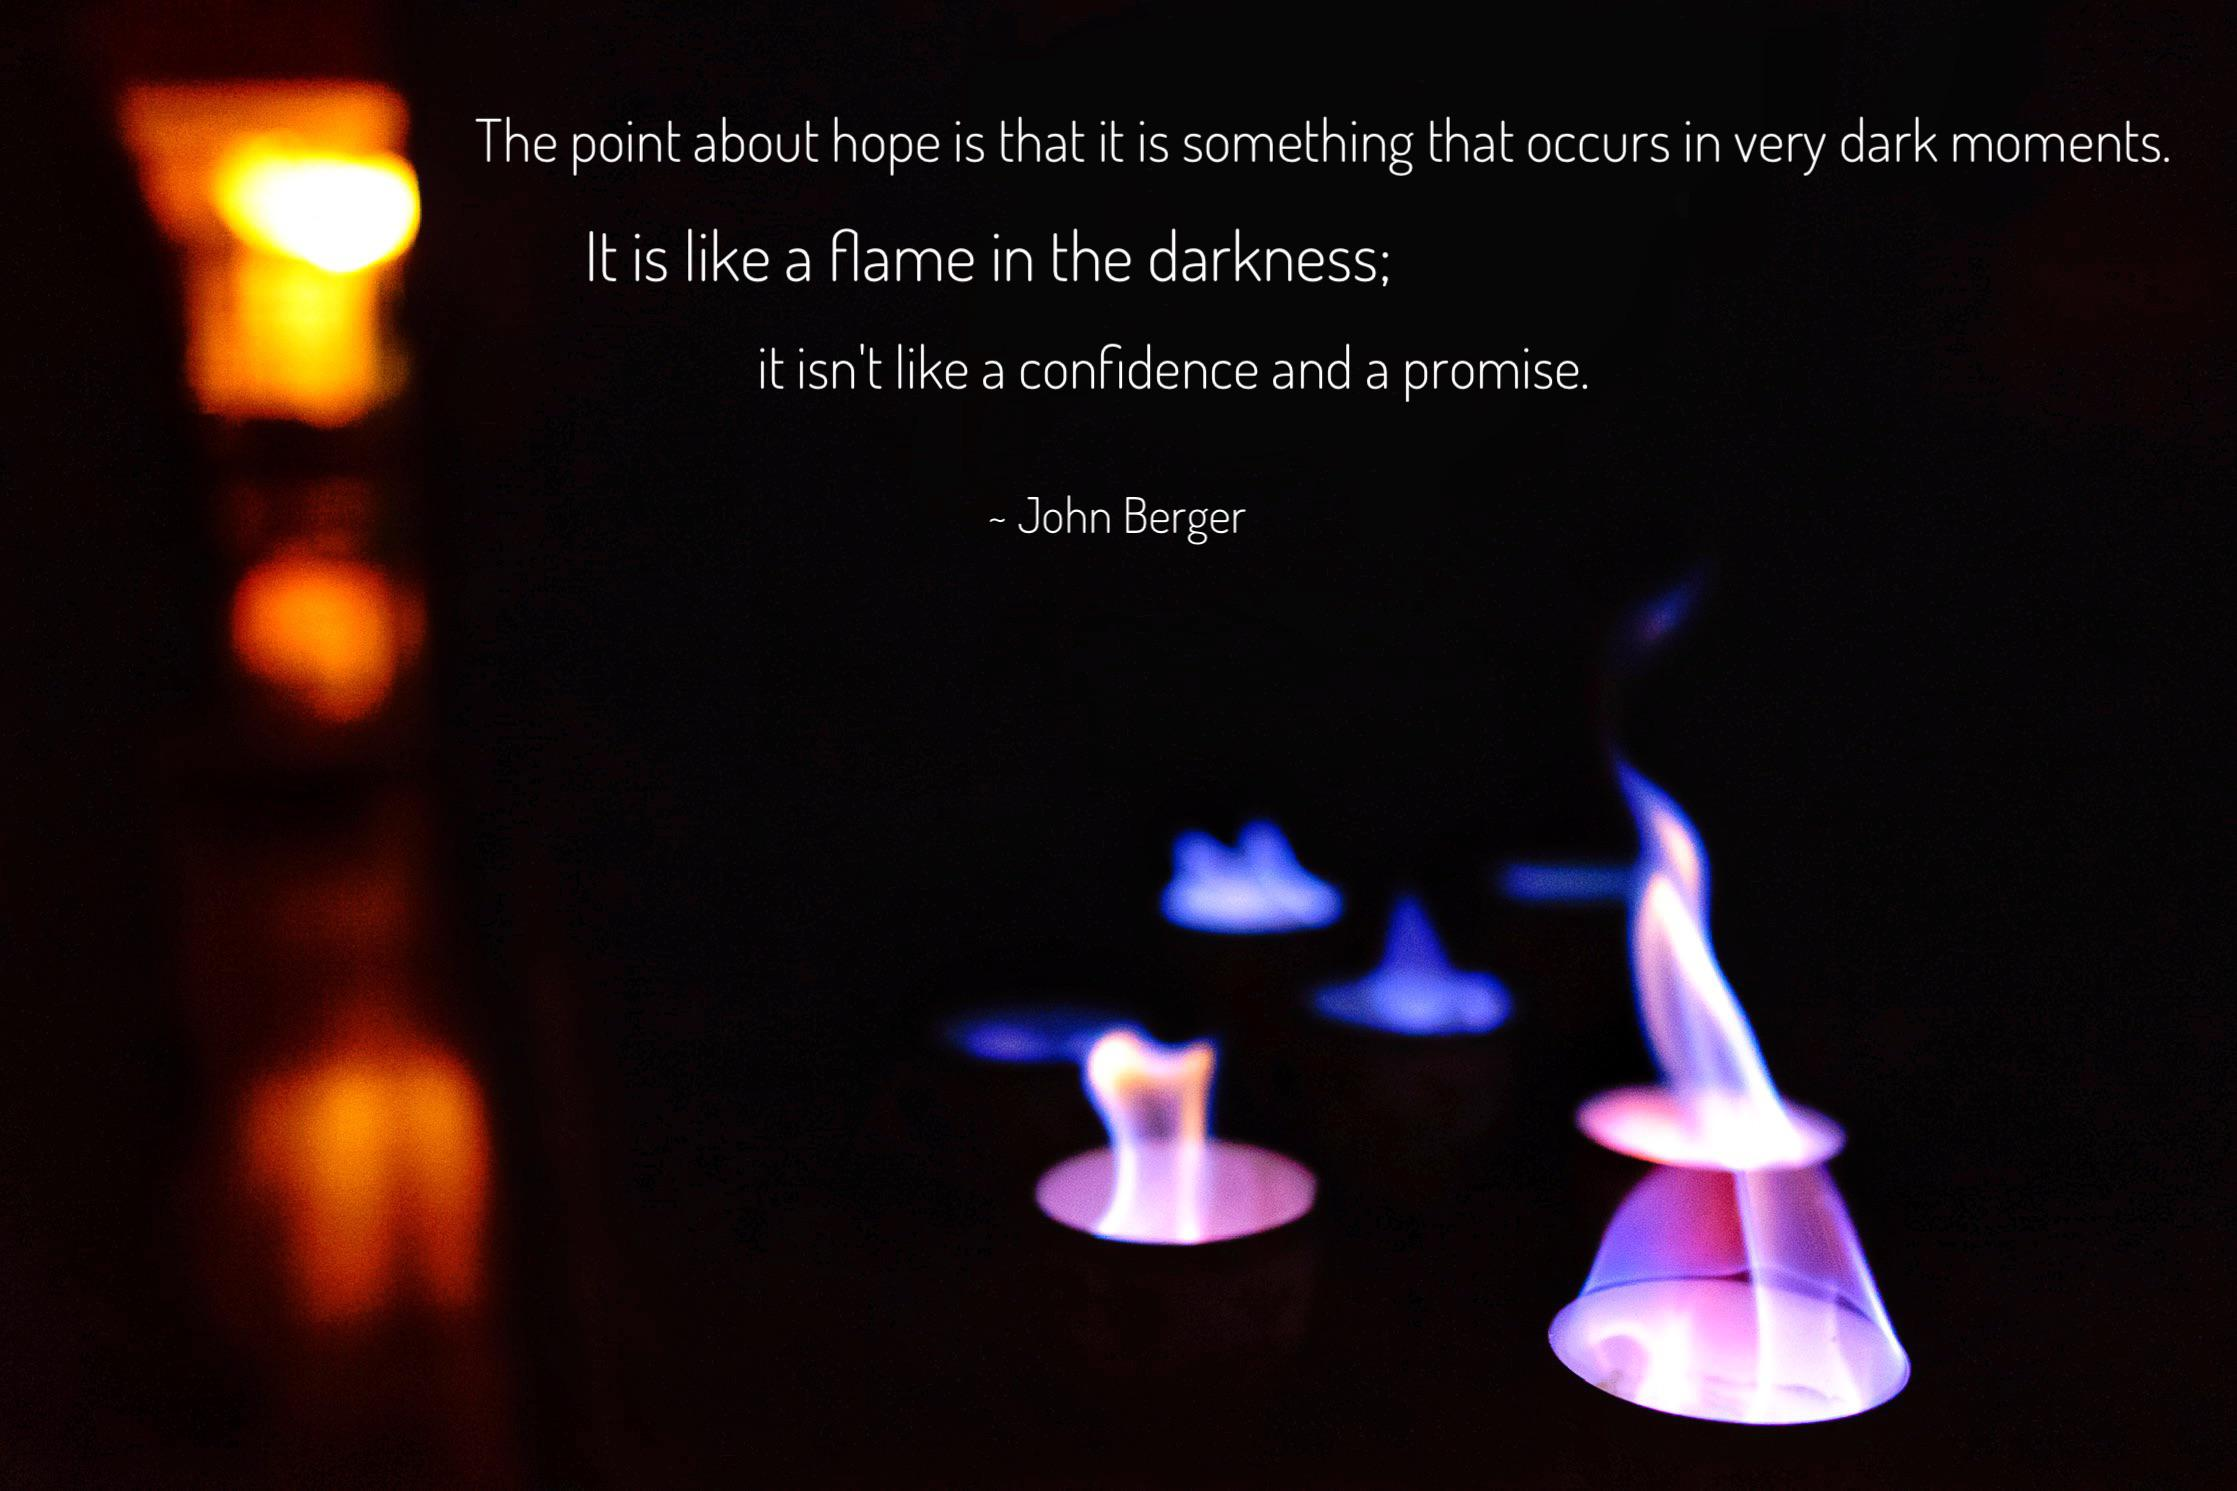 """The point about hope is that it is something that occurs in very dark moments. It is like a flame in the darkness; it isn't like a confidence and a promise."" ~John Berger [2237×1491] [OC]"